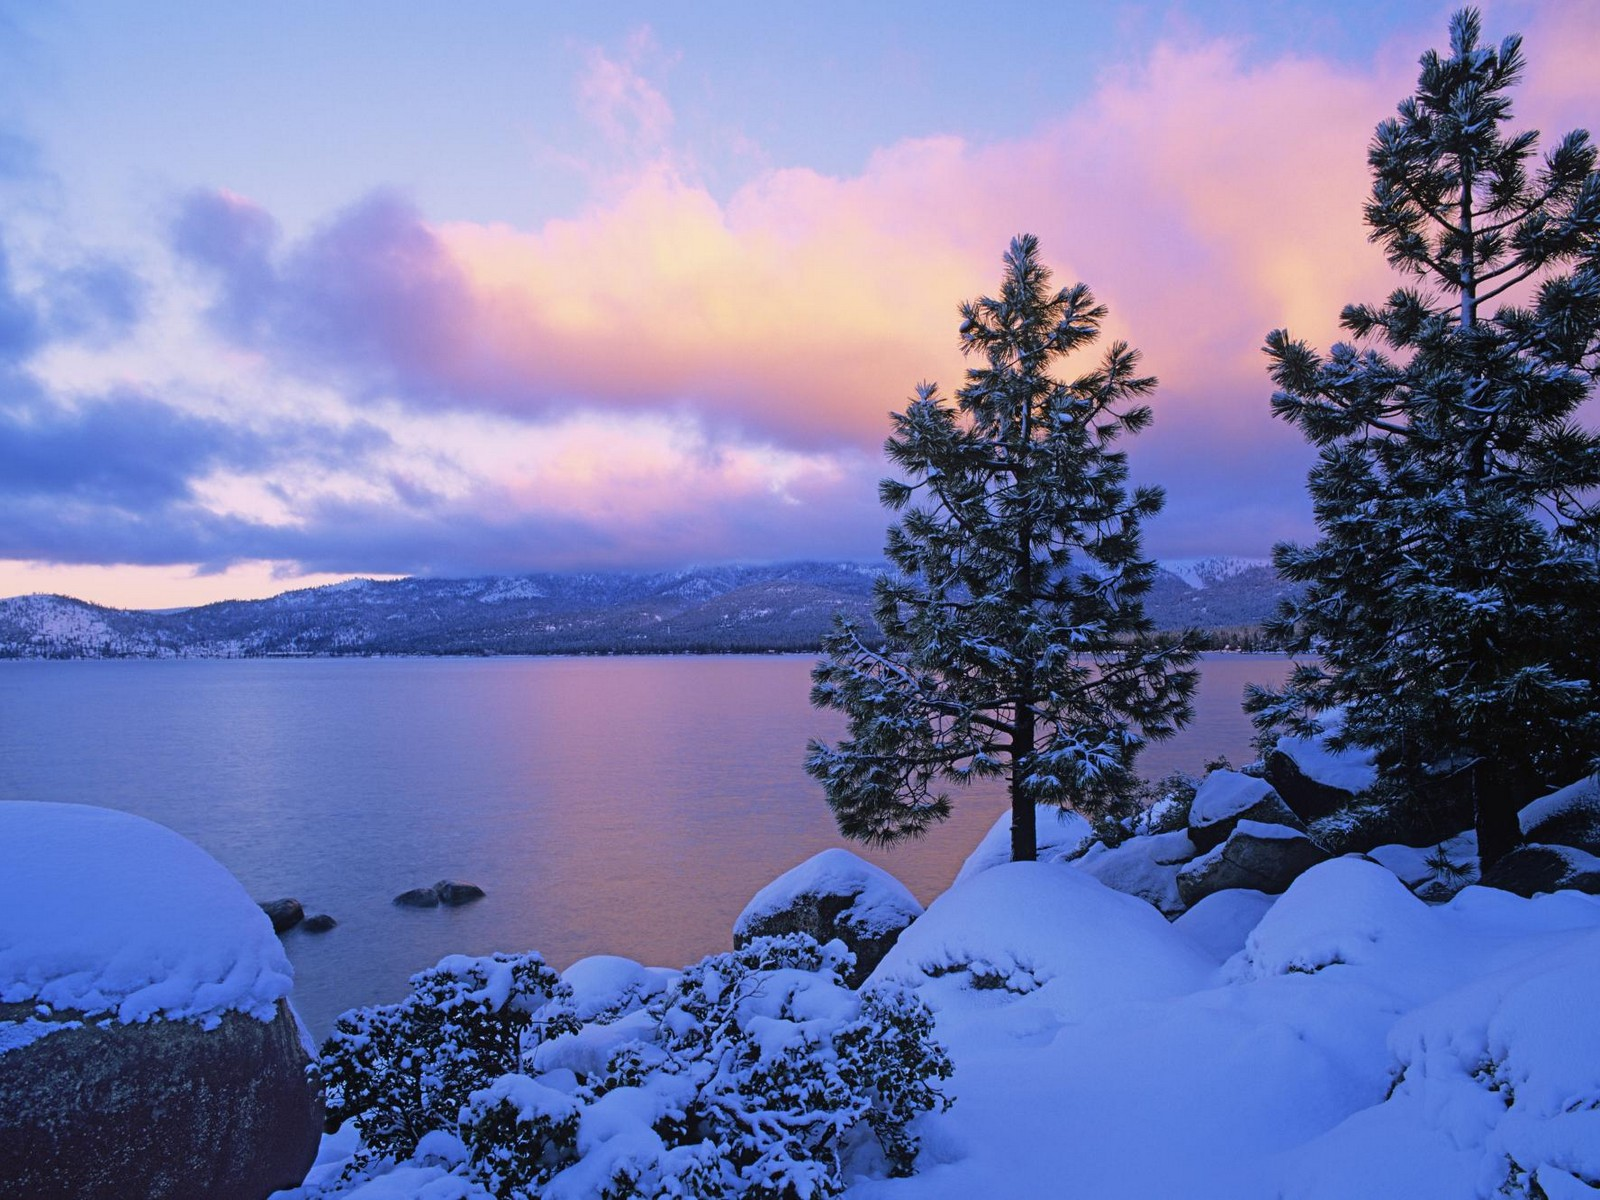 Free Wallpaper Winter Backgrounds, Amazing Winter Wallpapers